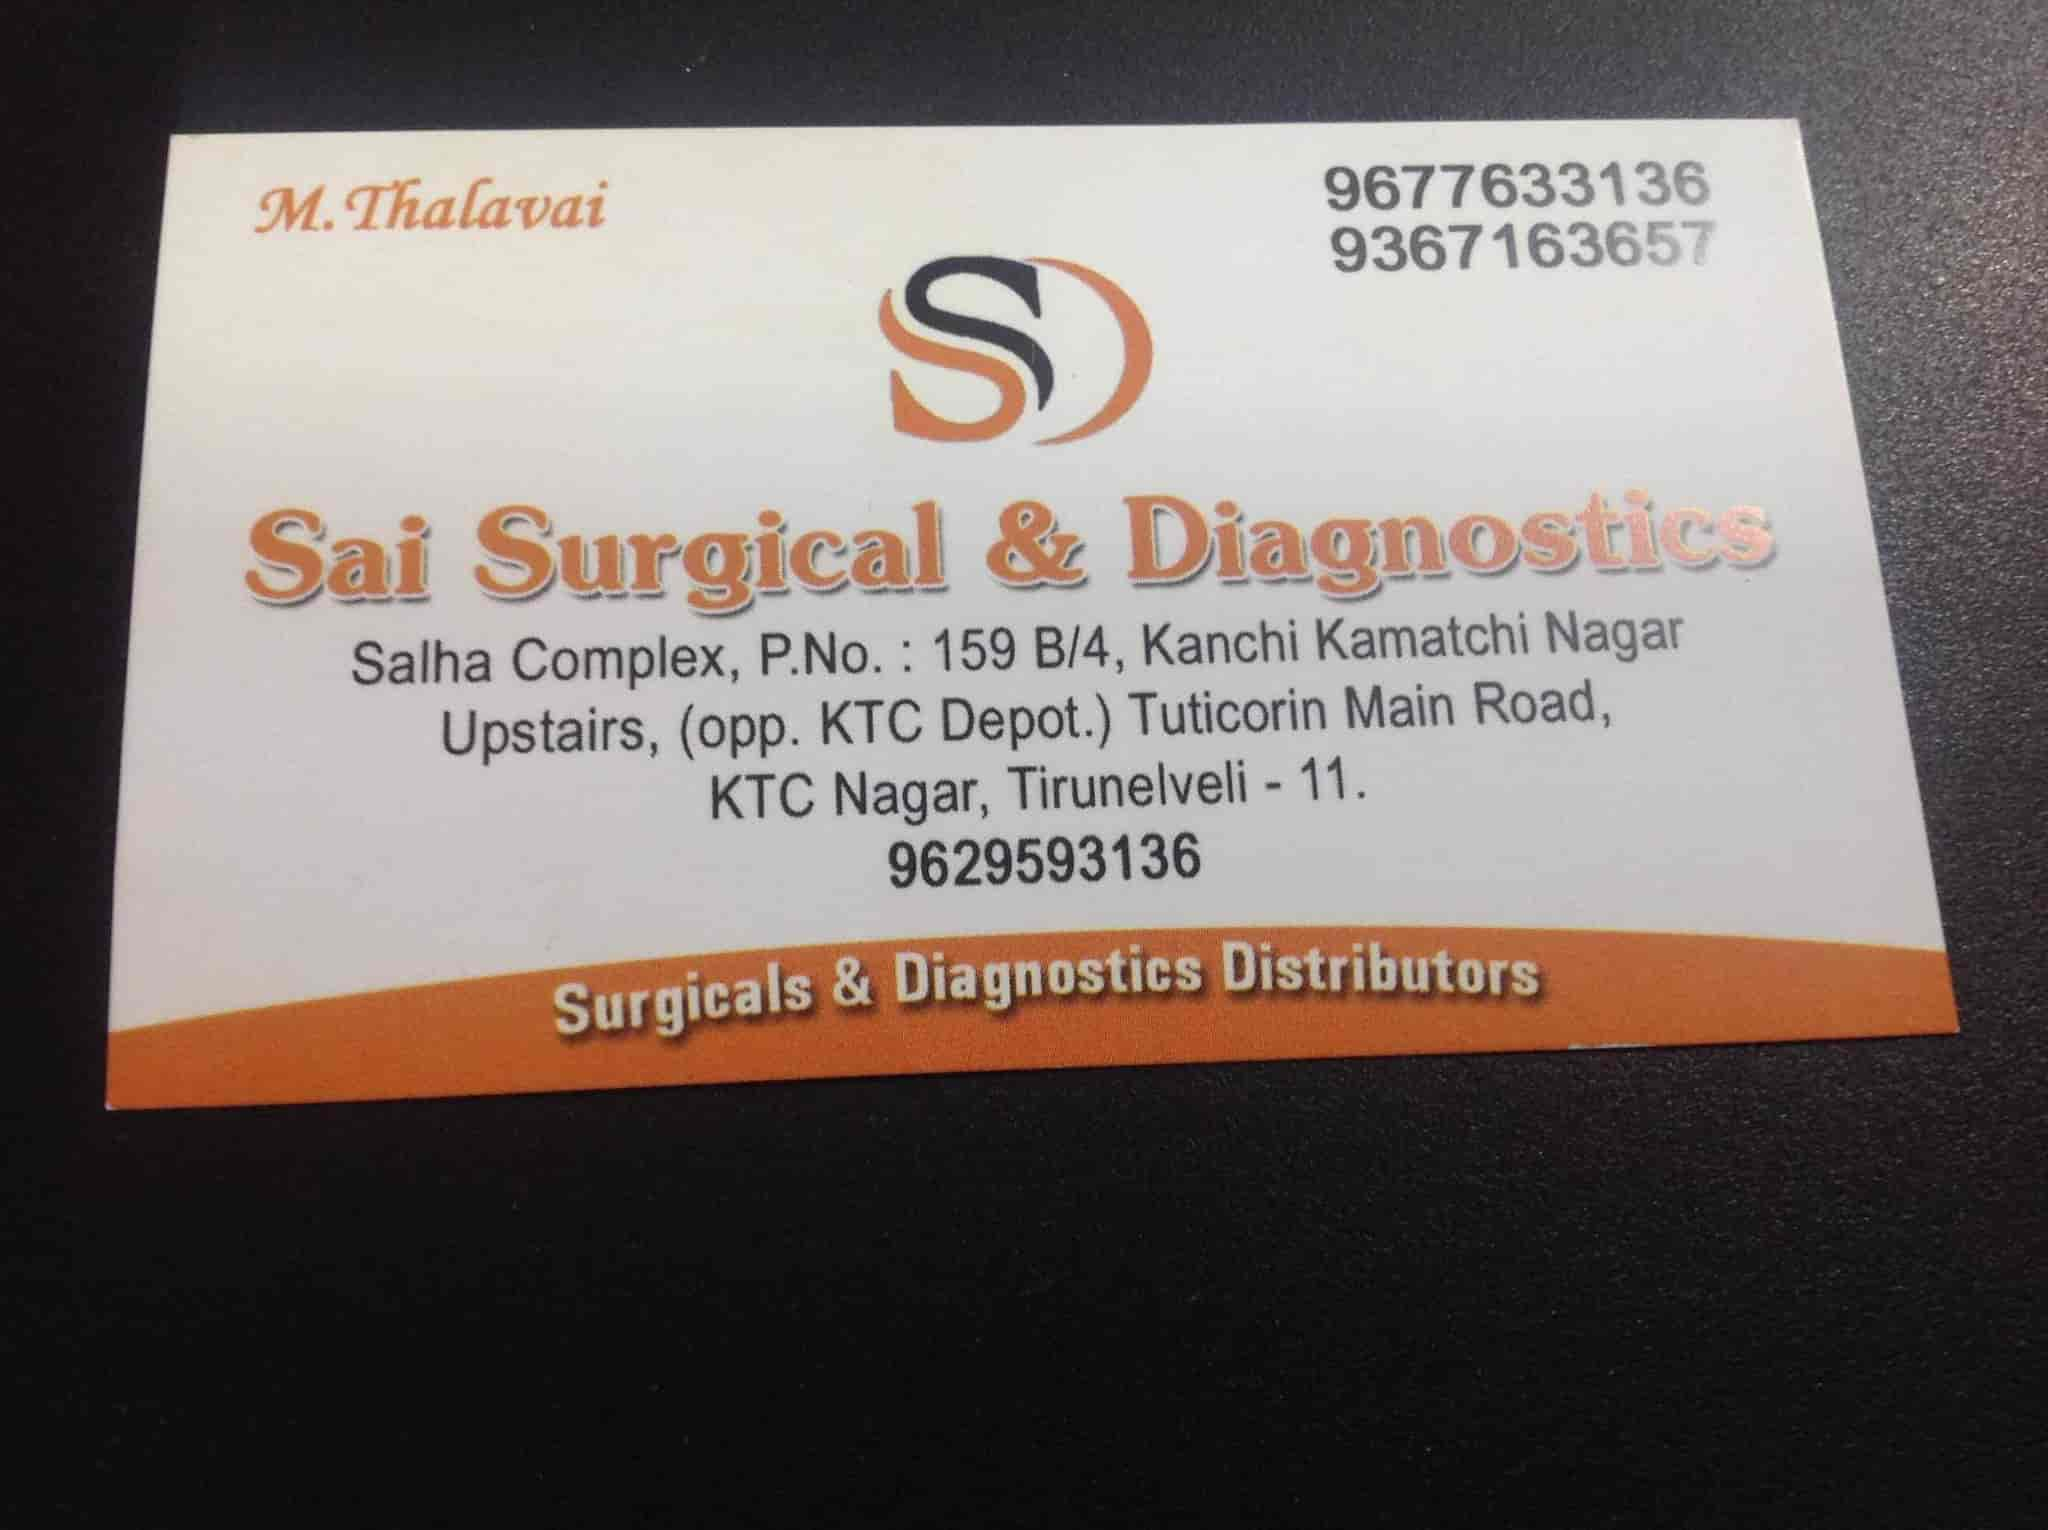 Surgical Distributor Business